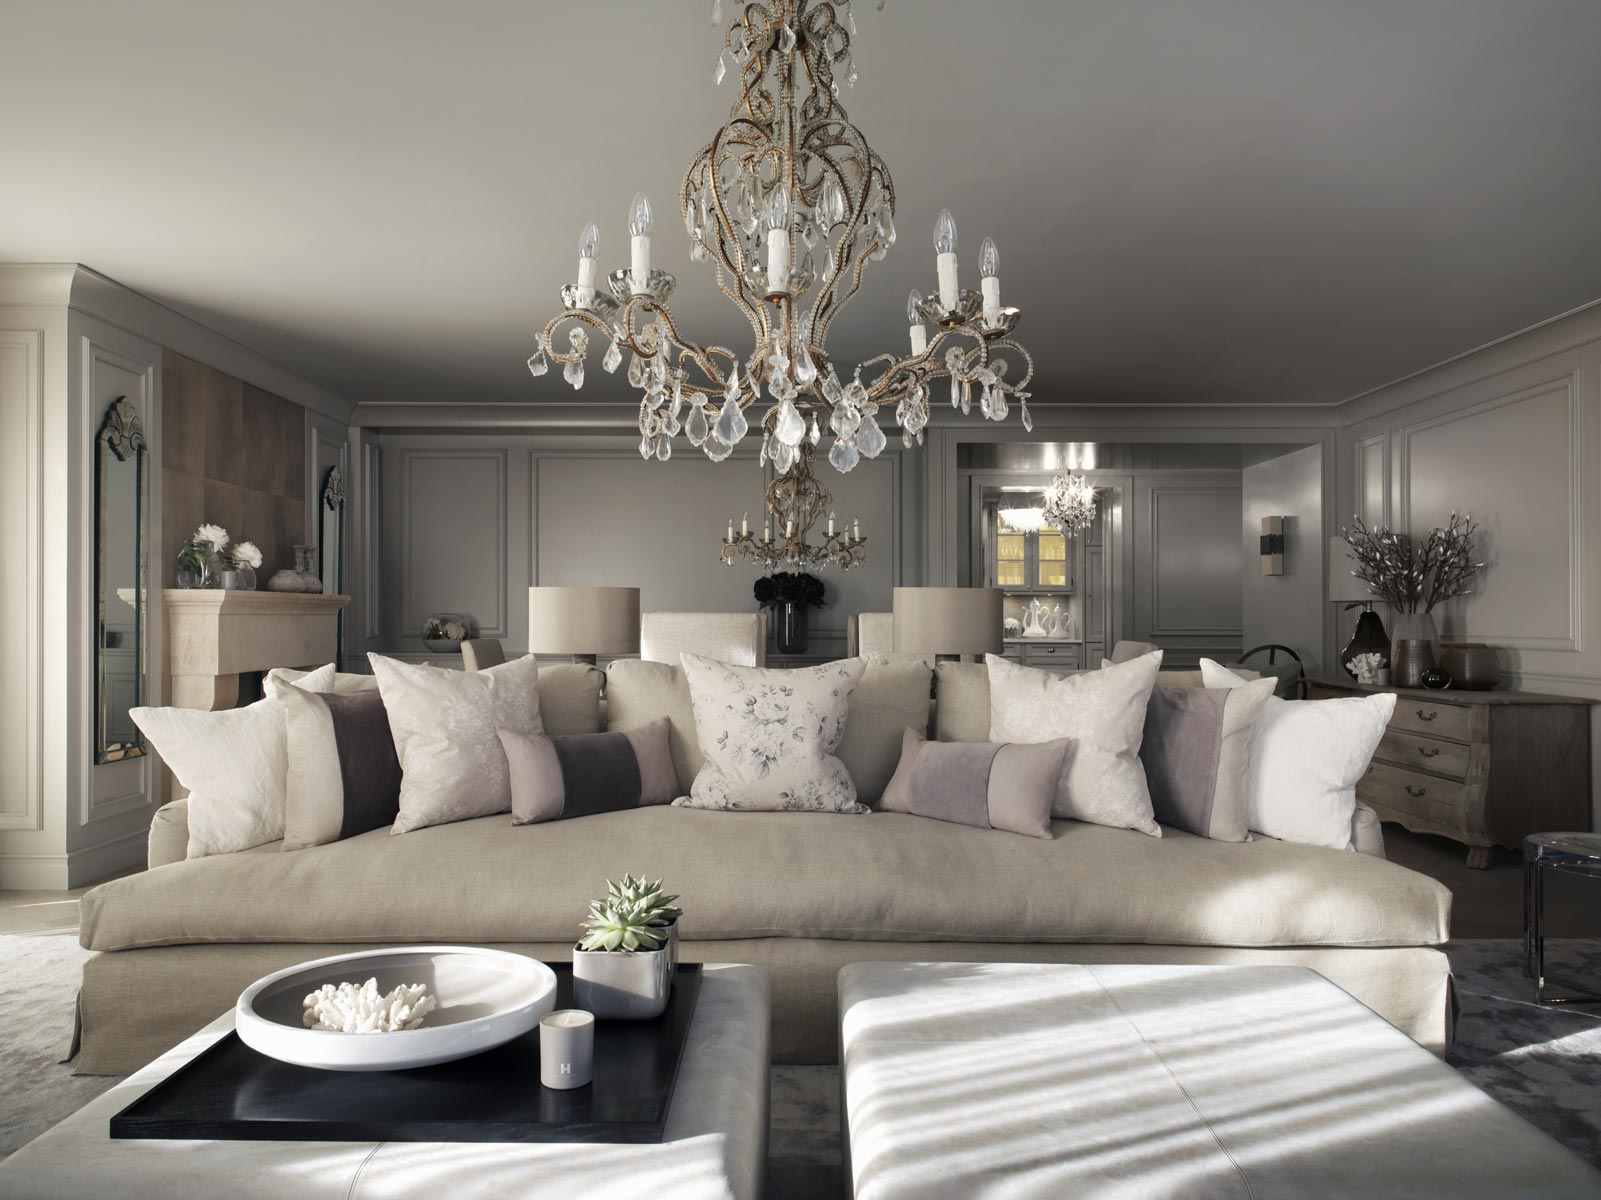 Design Chalet By Kelly Hoppen Kelly Hoppen Top 10 Kelly Hoppen Design